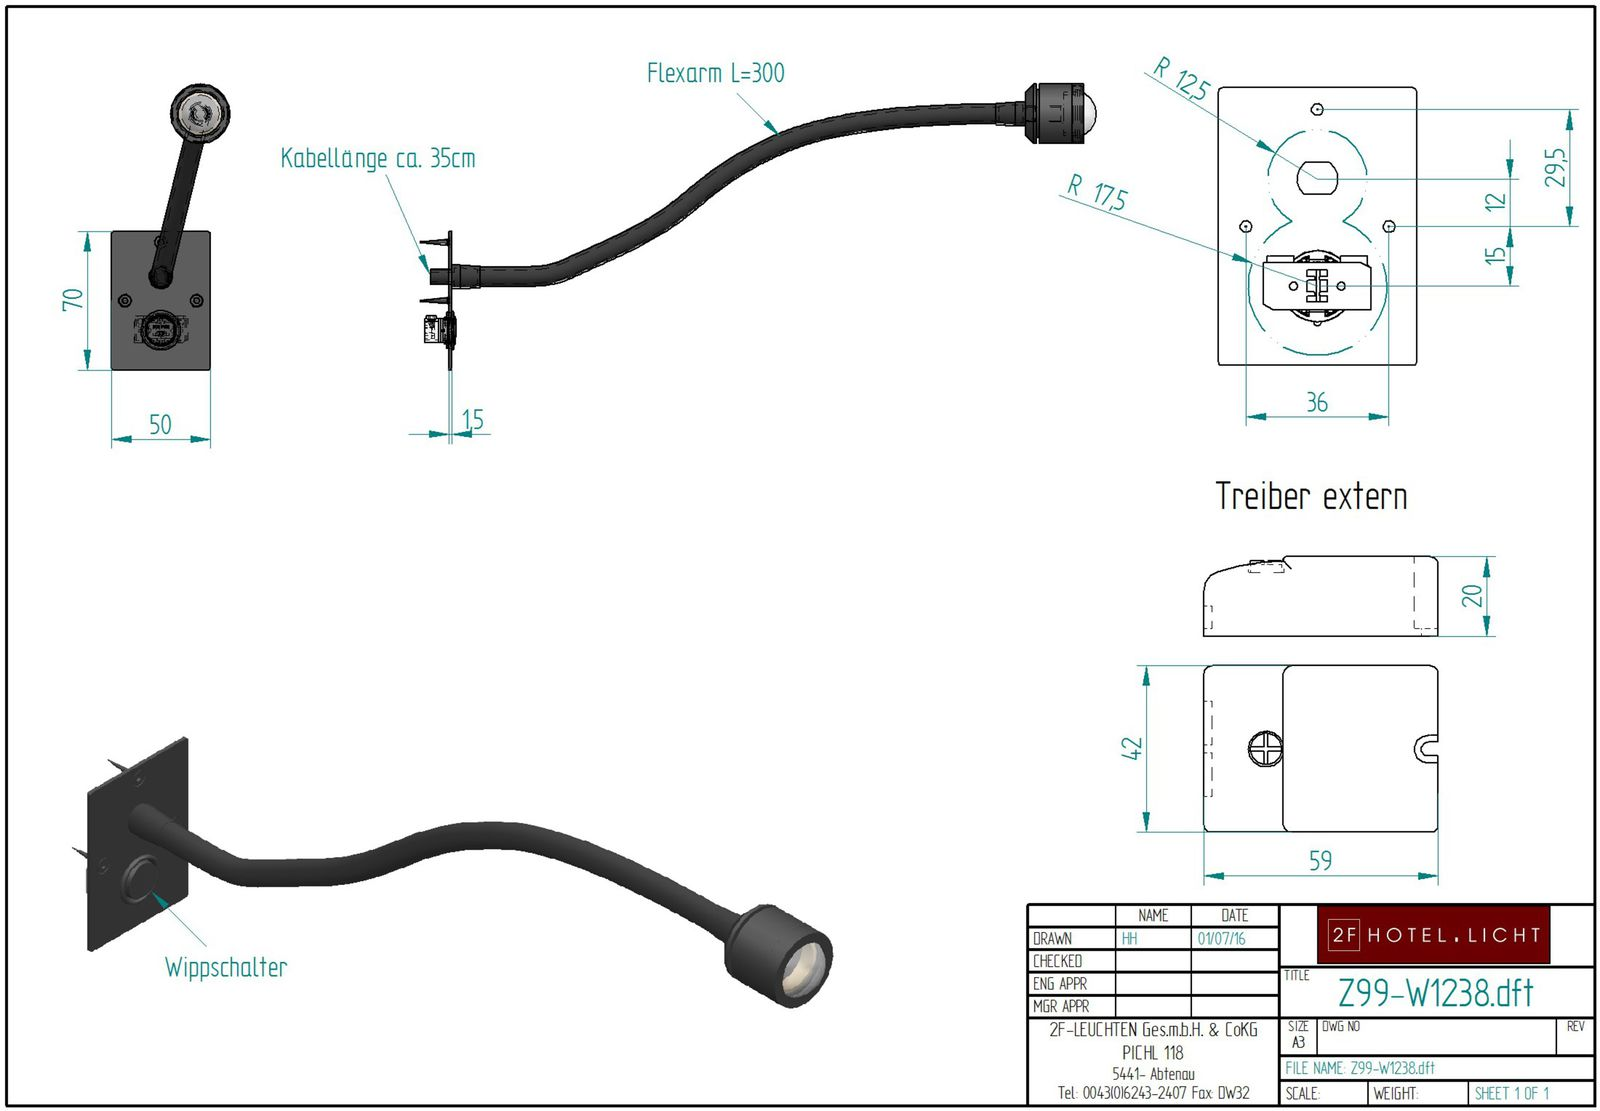 LED Flexlighting with switch, length flexarm=300mm, surface: coated softblack, techn. details: 1W LED warmwhite